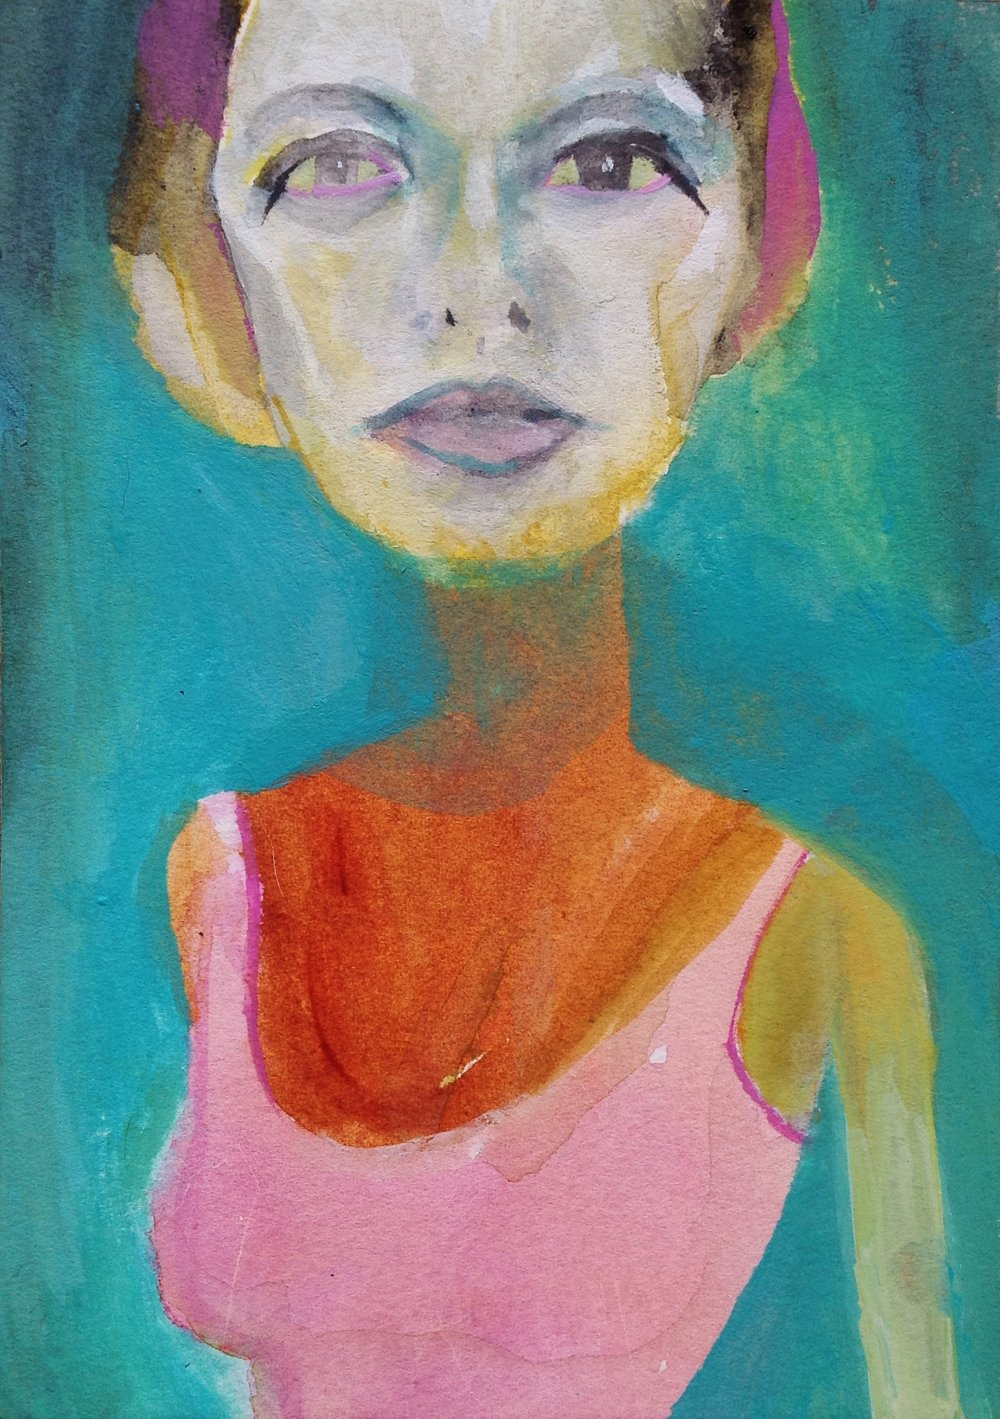 """Girl, You Got Some Skinny Arms   acrylic and watercolor on watercolor board  5""""x7""""  2018   SOLD (Unavailable)"""